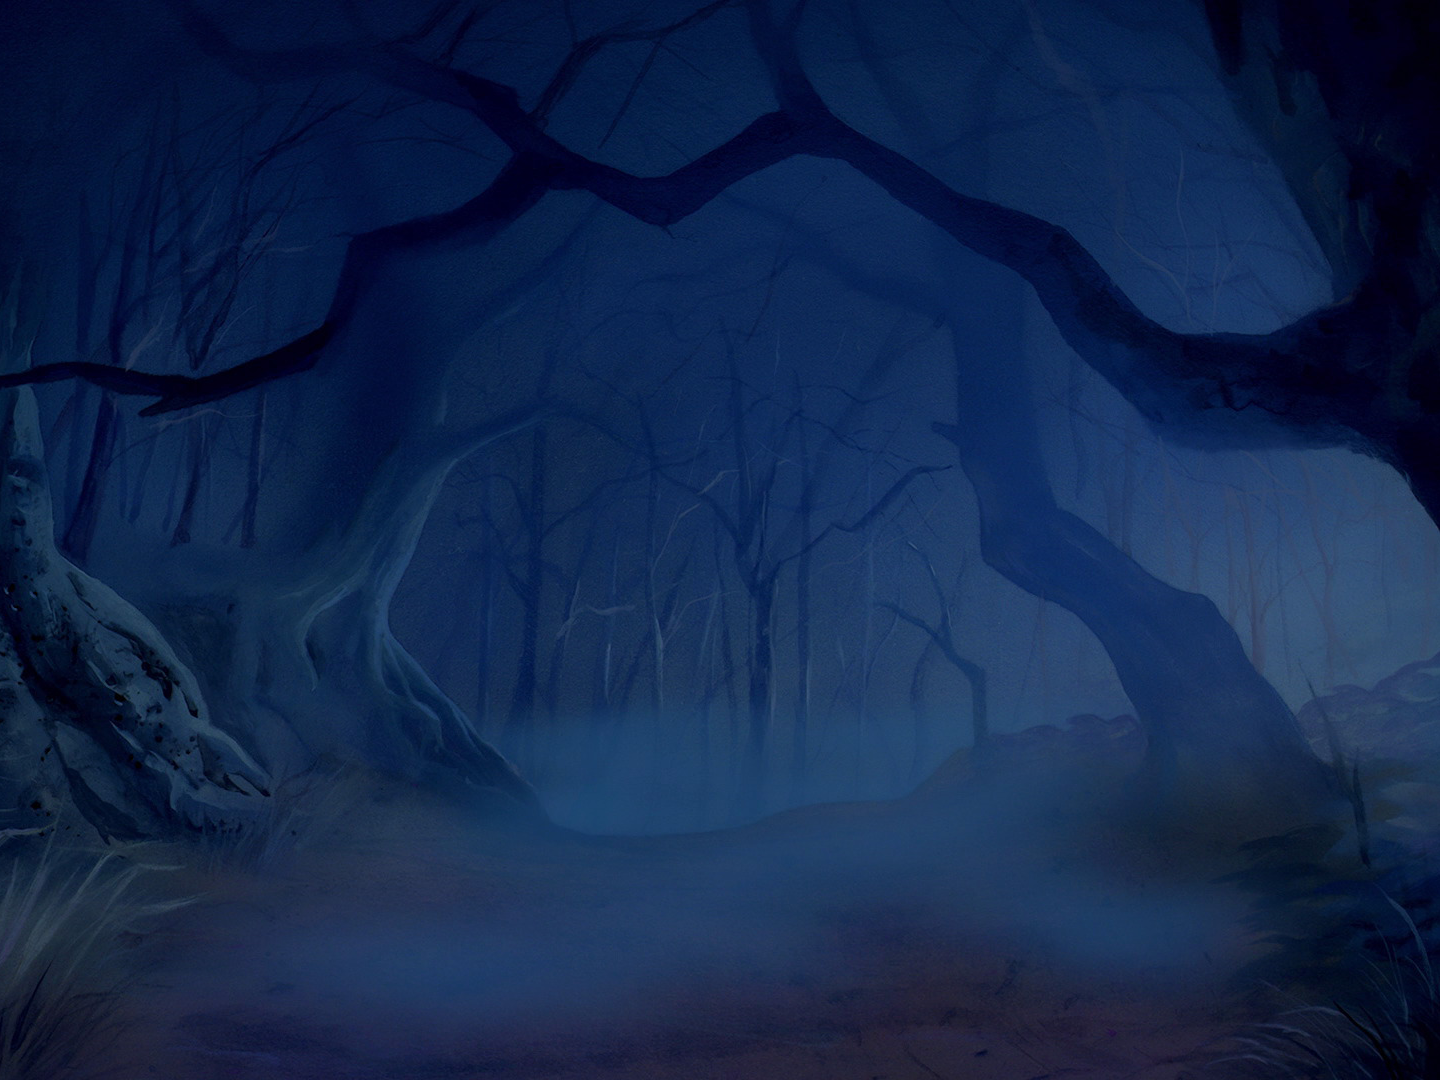 El Bosque (Beauty and the Beast)